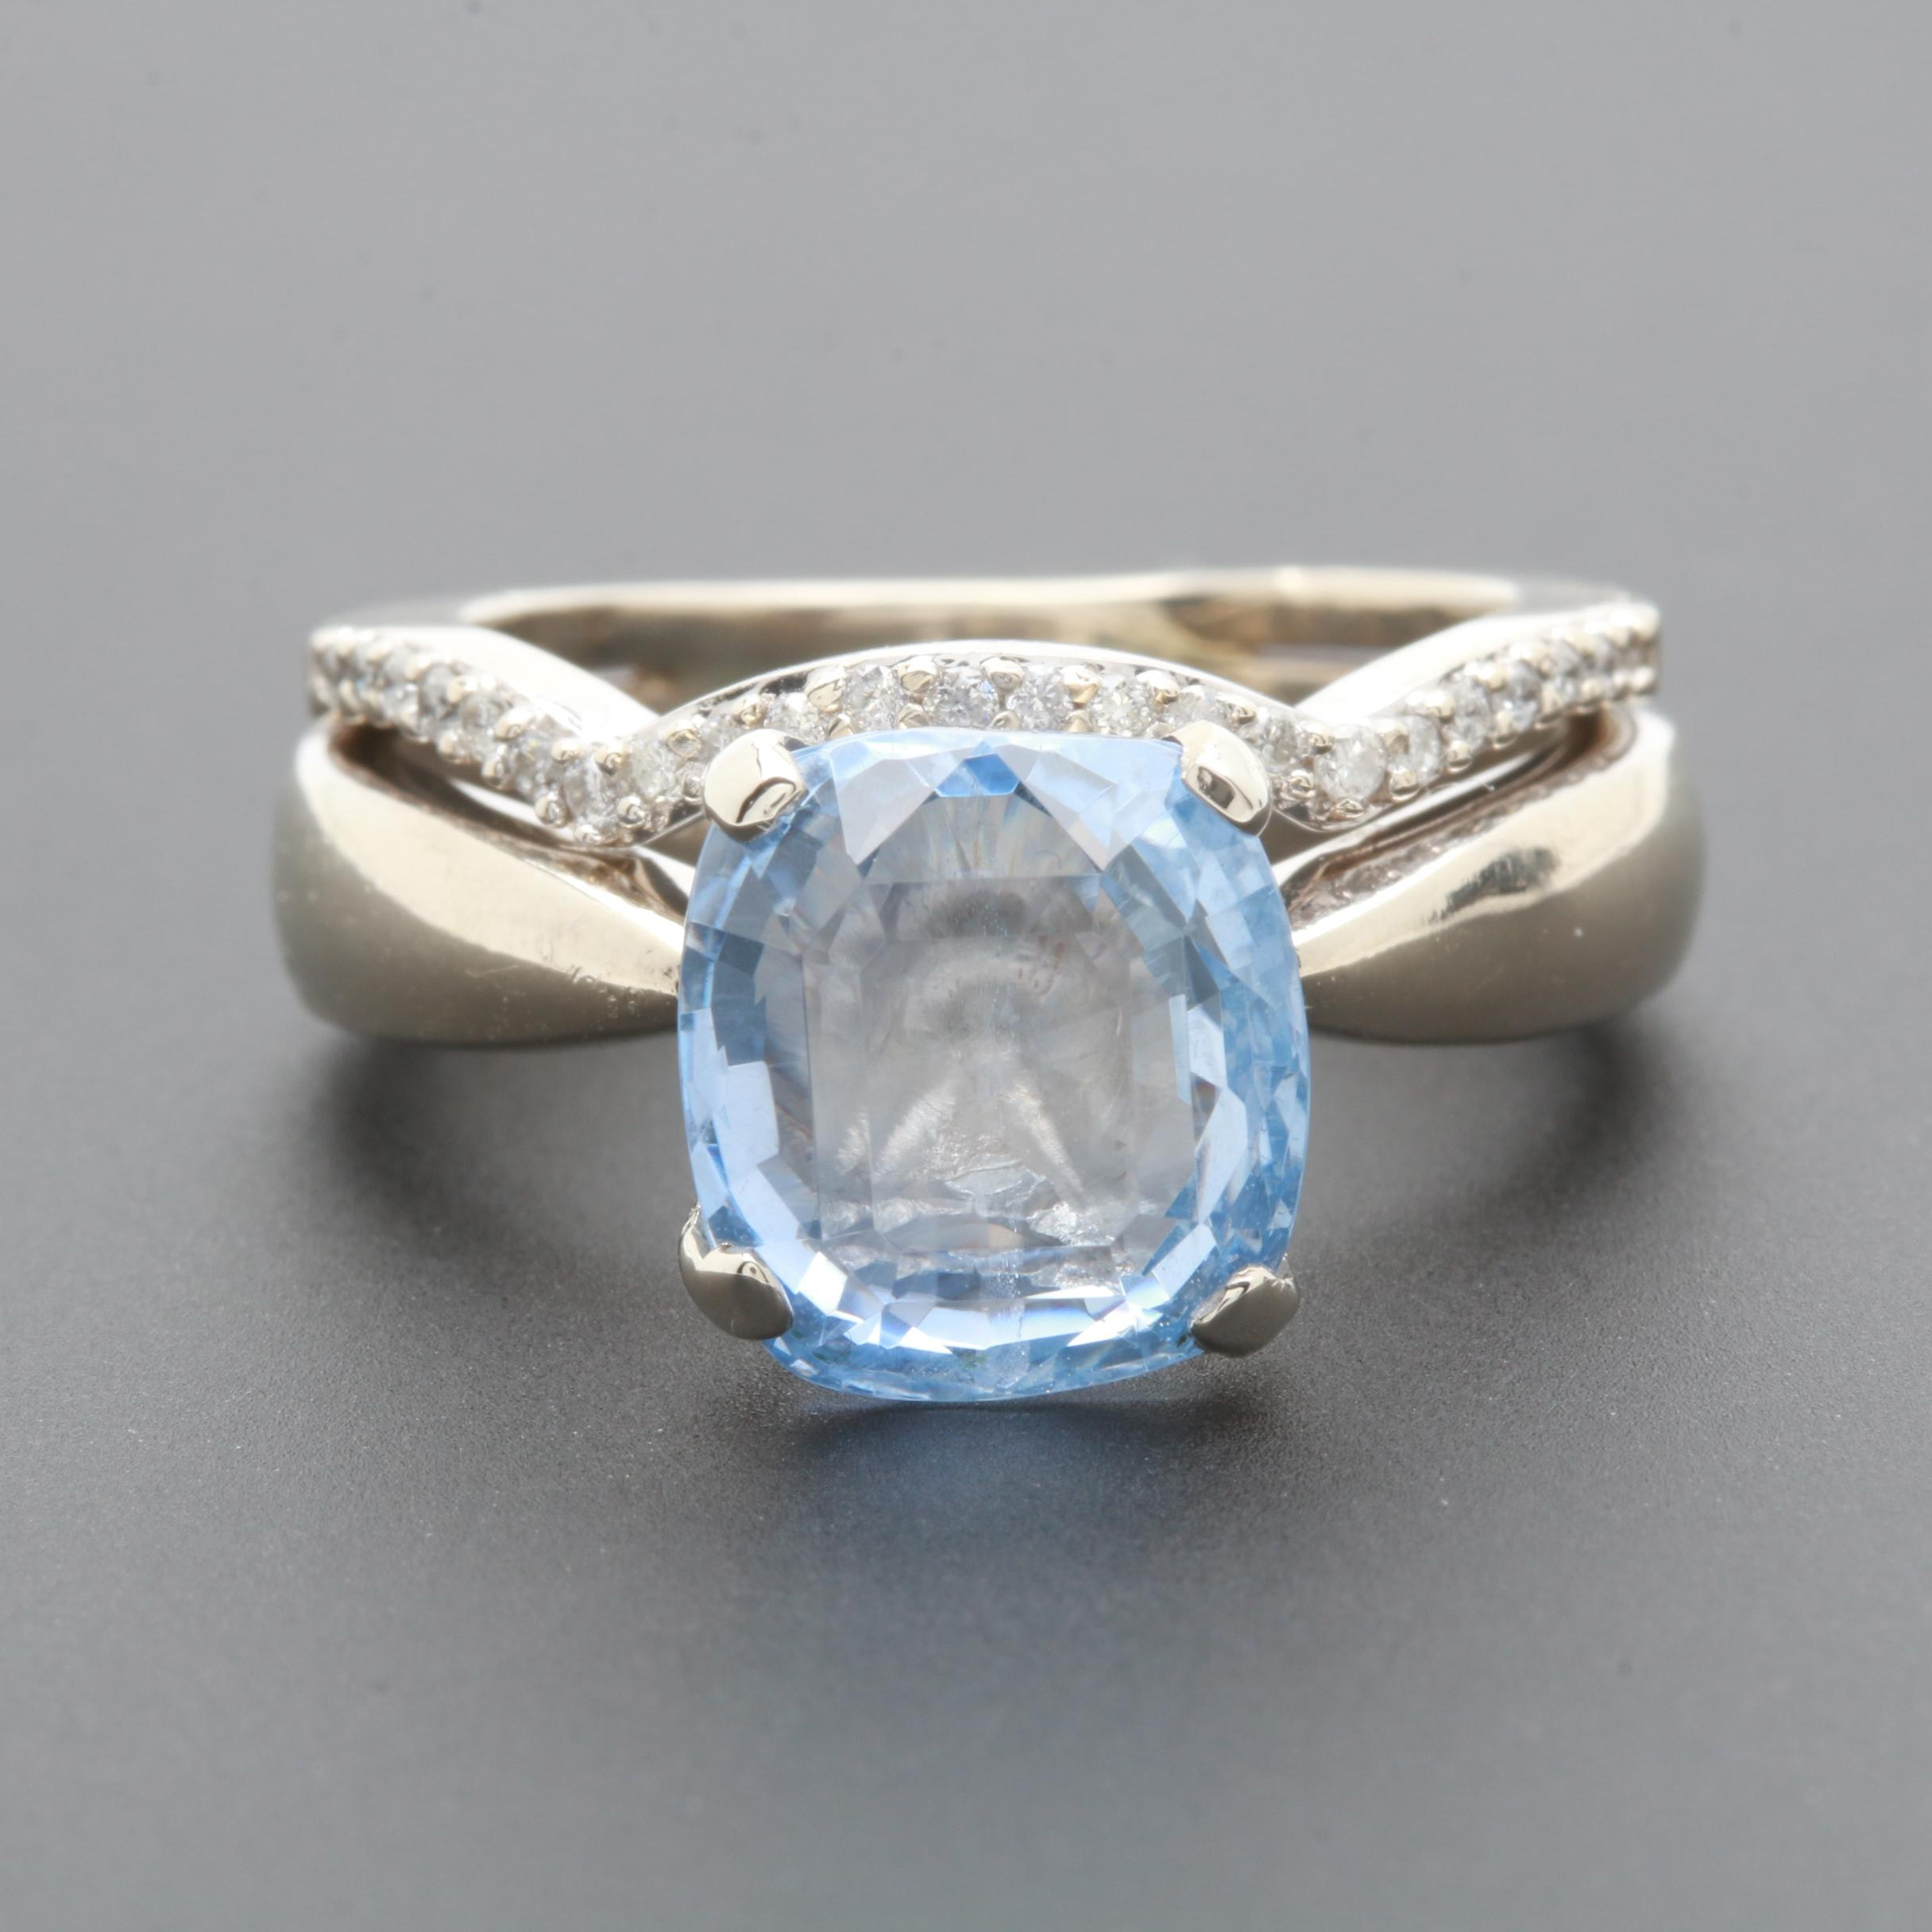 Kate McCullar 14K White Gold 4.92 CT Sapphire and Diamond Ring with GIA Report